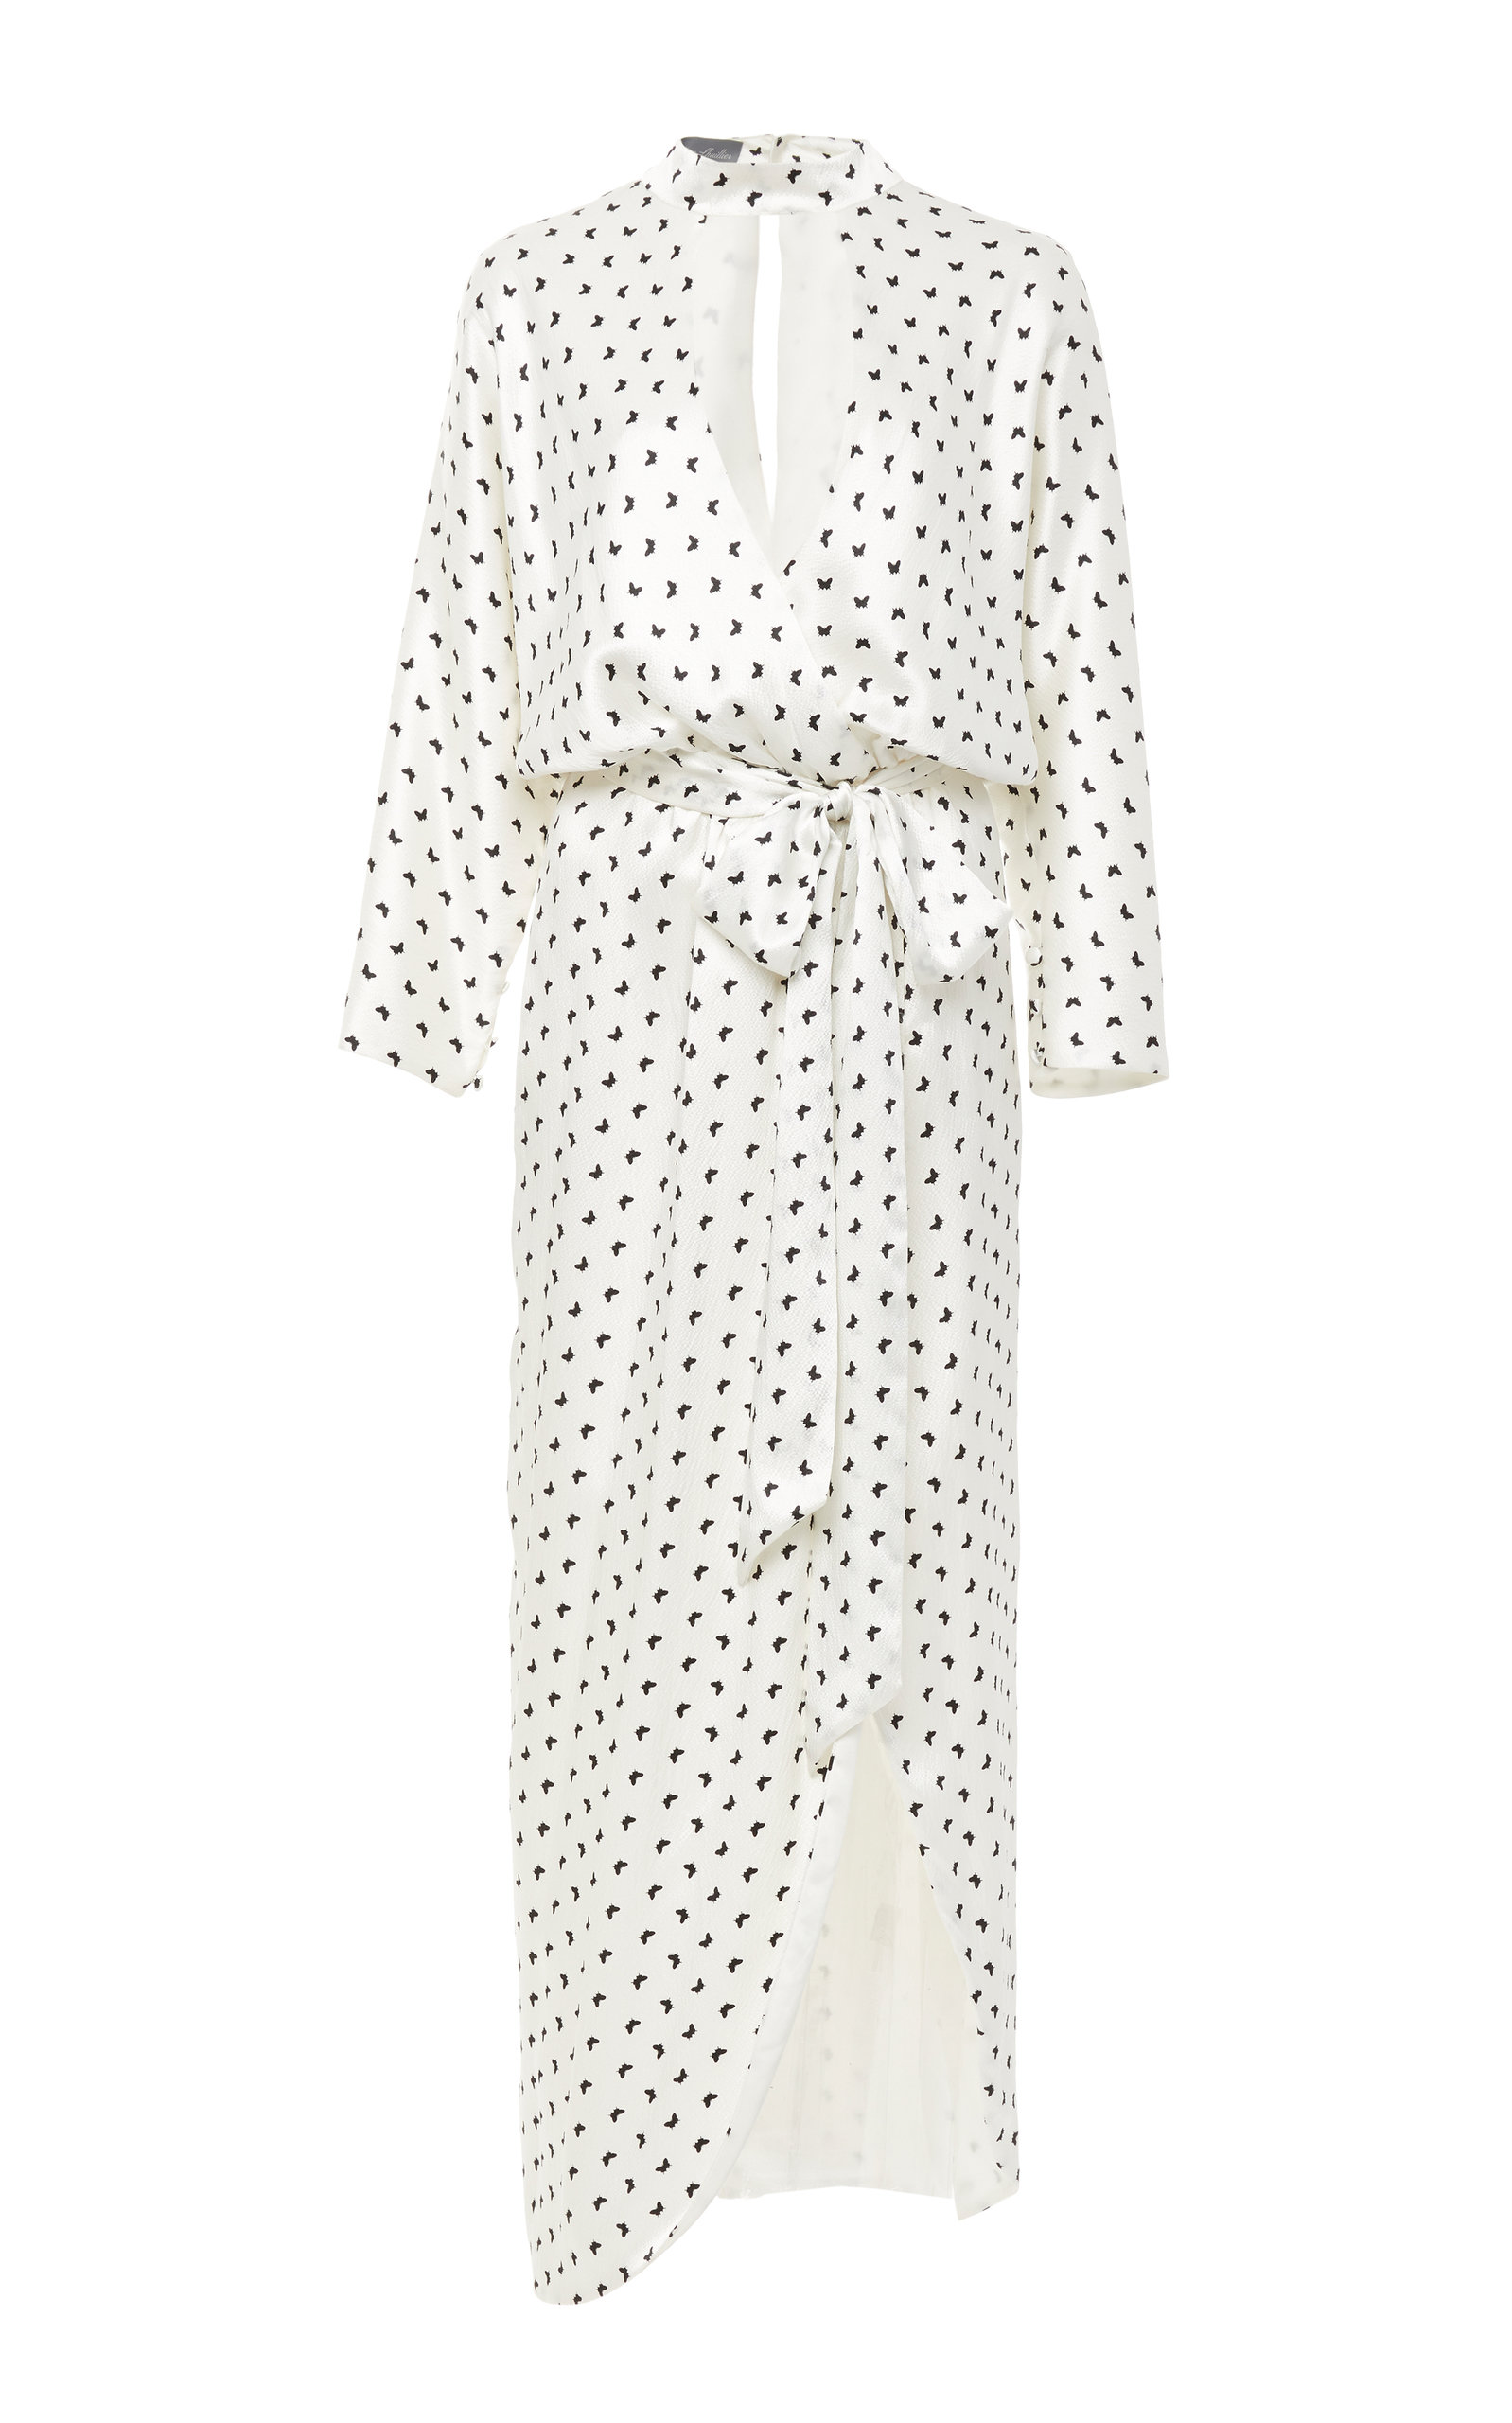 MONIQUE LHUILLIER BUTTERFLY PRINTED SATIN FAUX WRAP DRESS